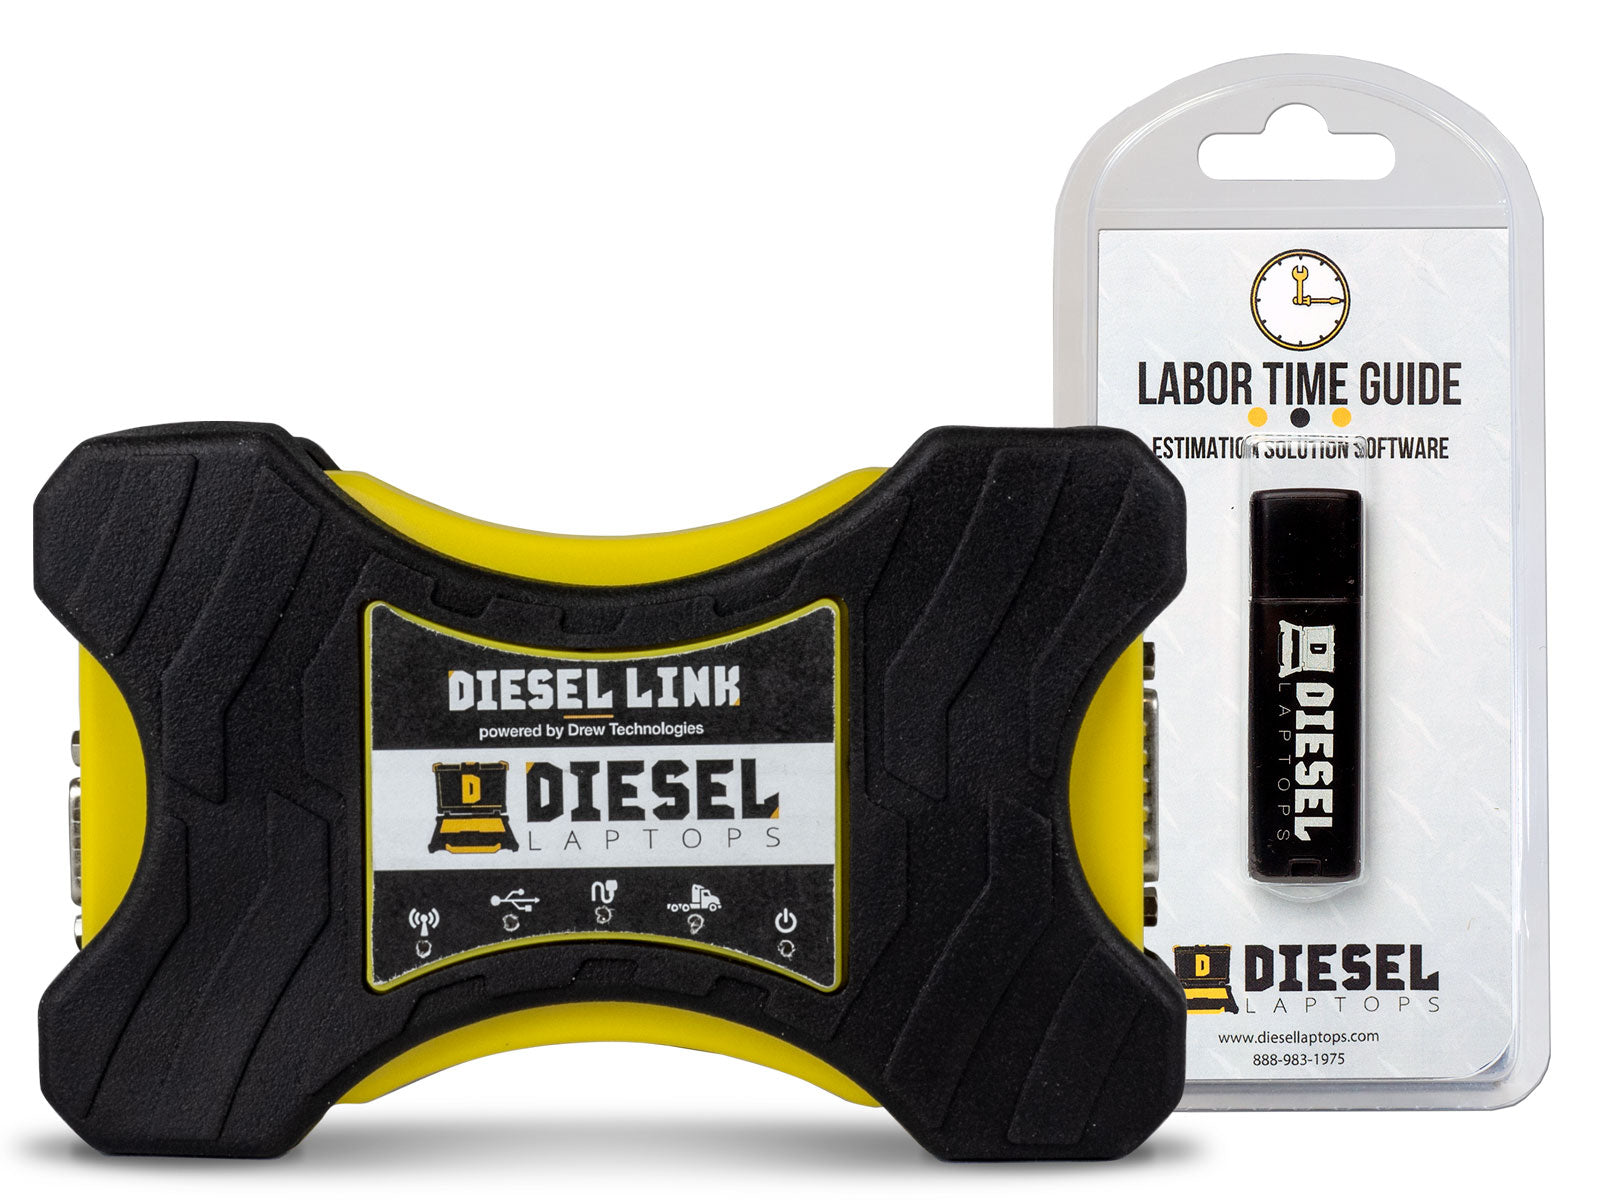 Diesel Laptops DieselLink with Labor Time Guide